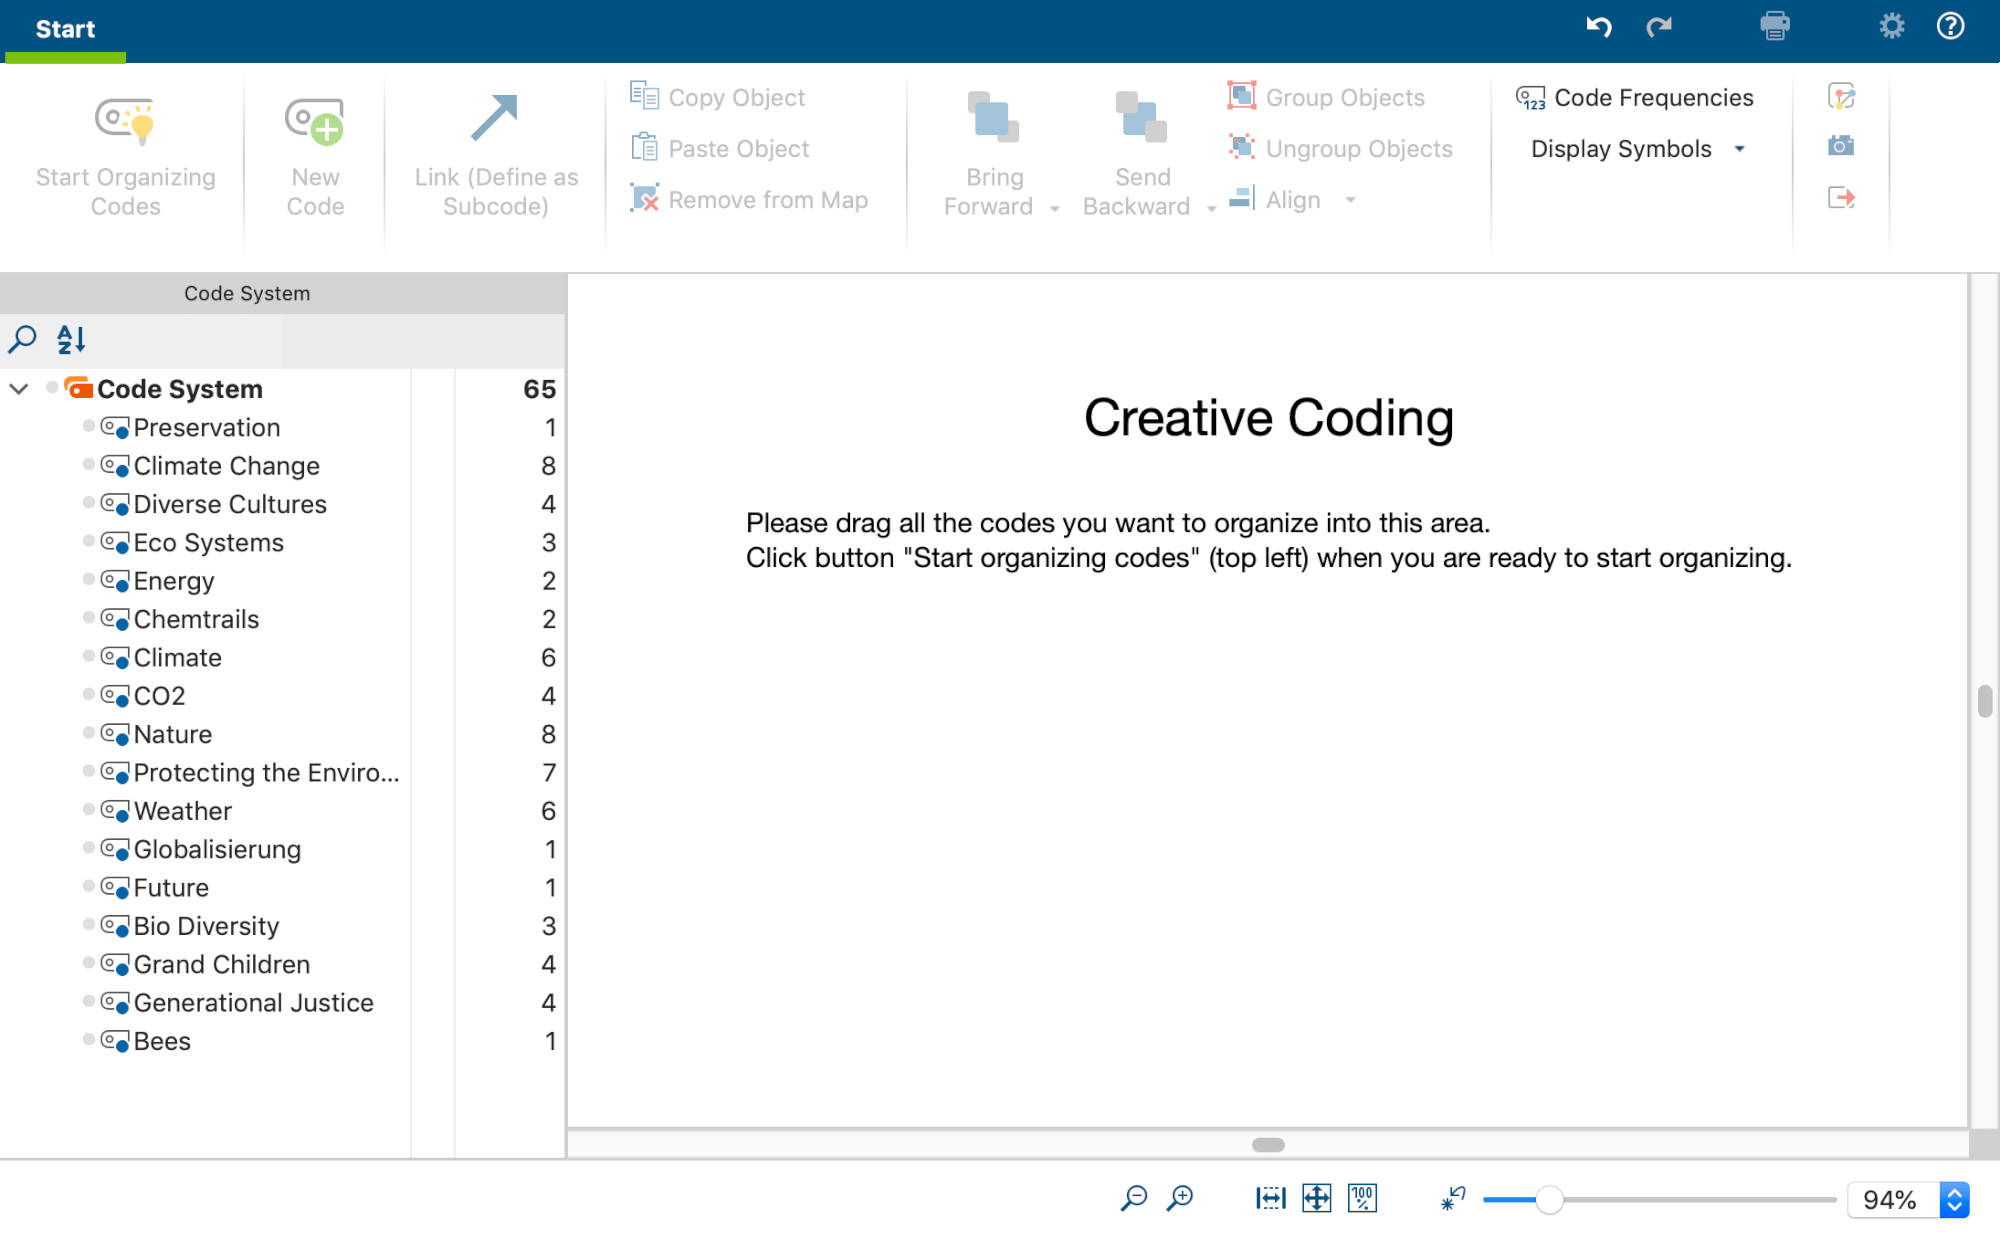 Selecting Codes for Creative Coding